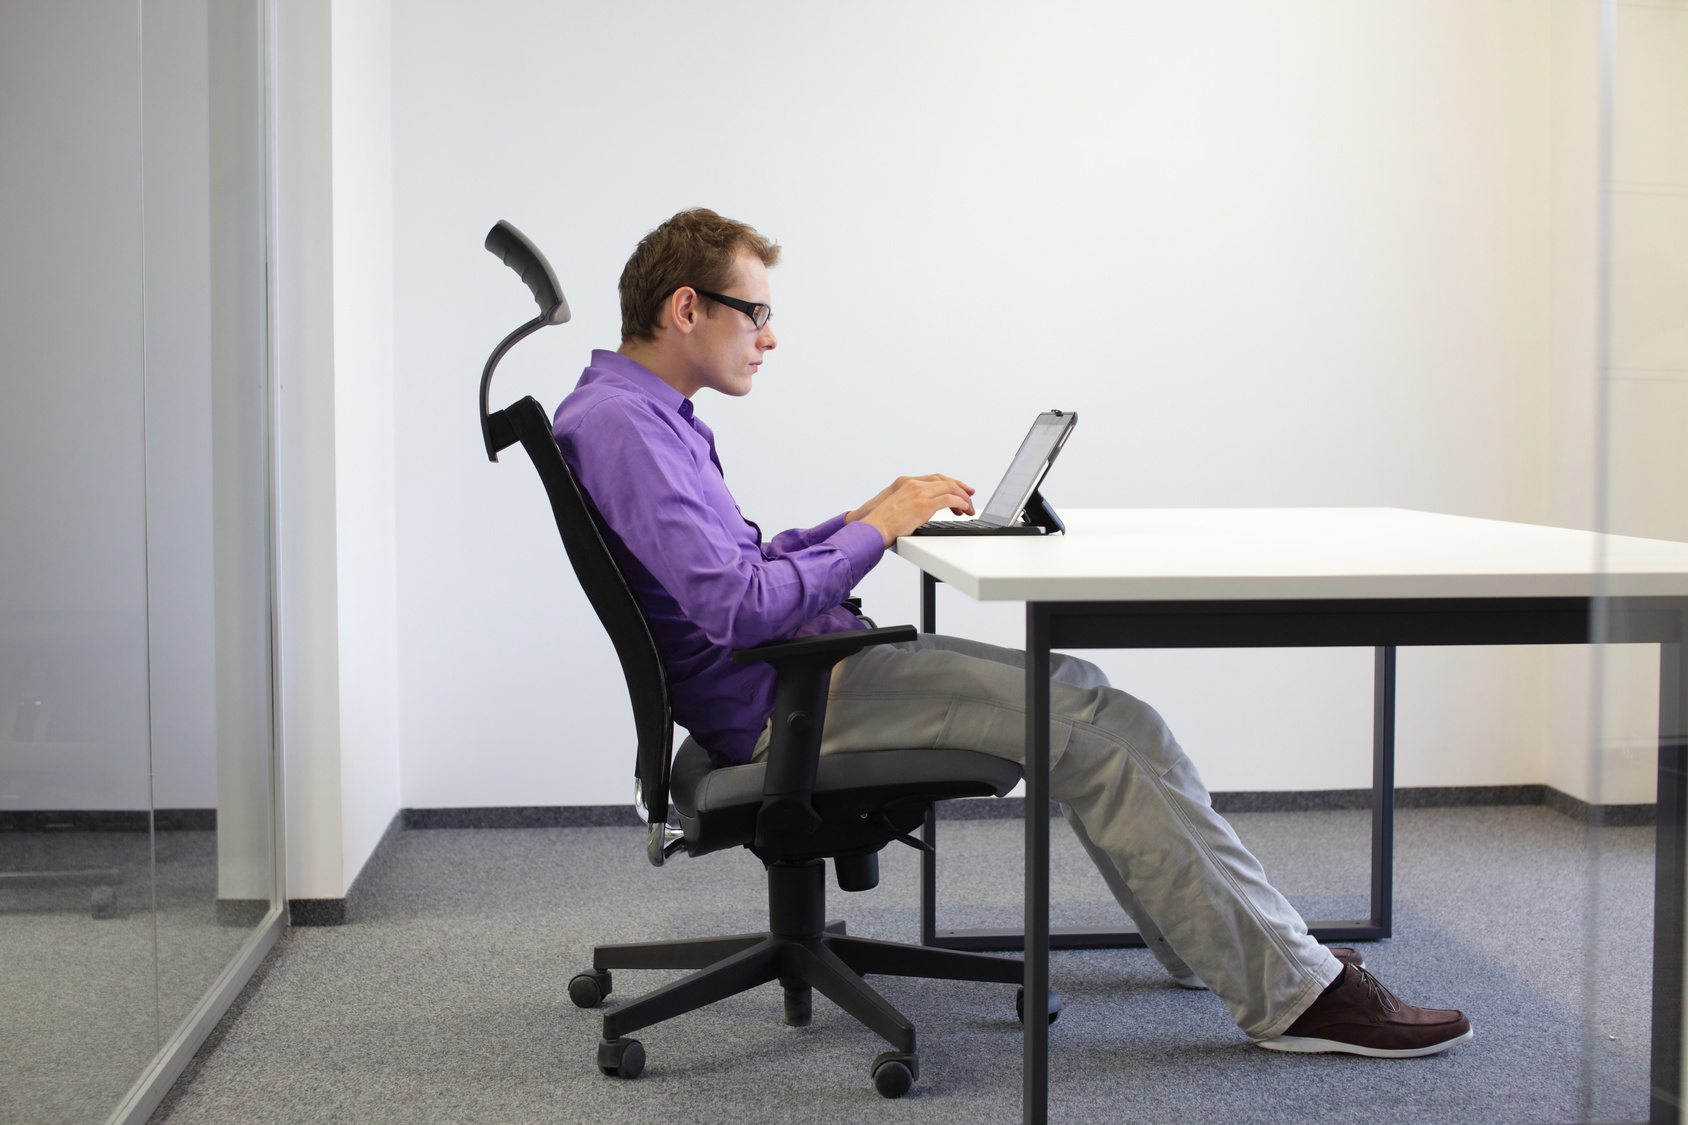 text neck - man in slouching position on ergonomic chair working with tablet at desk